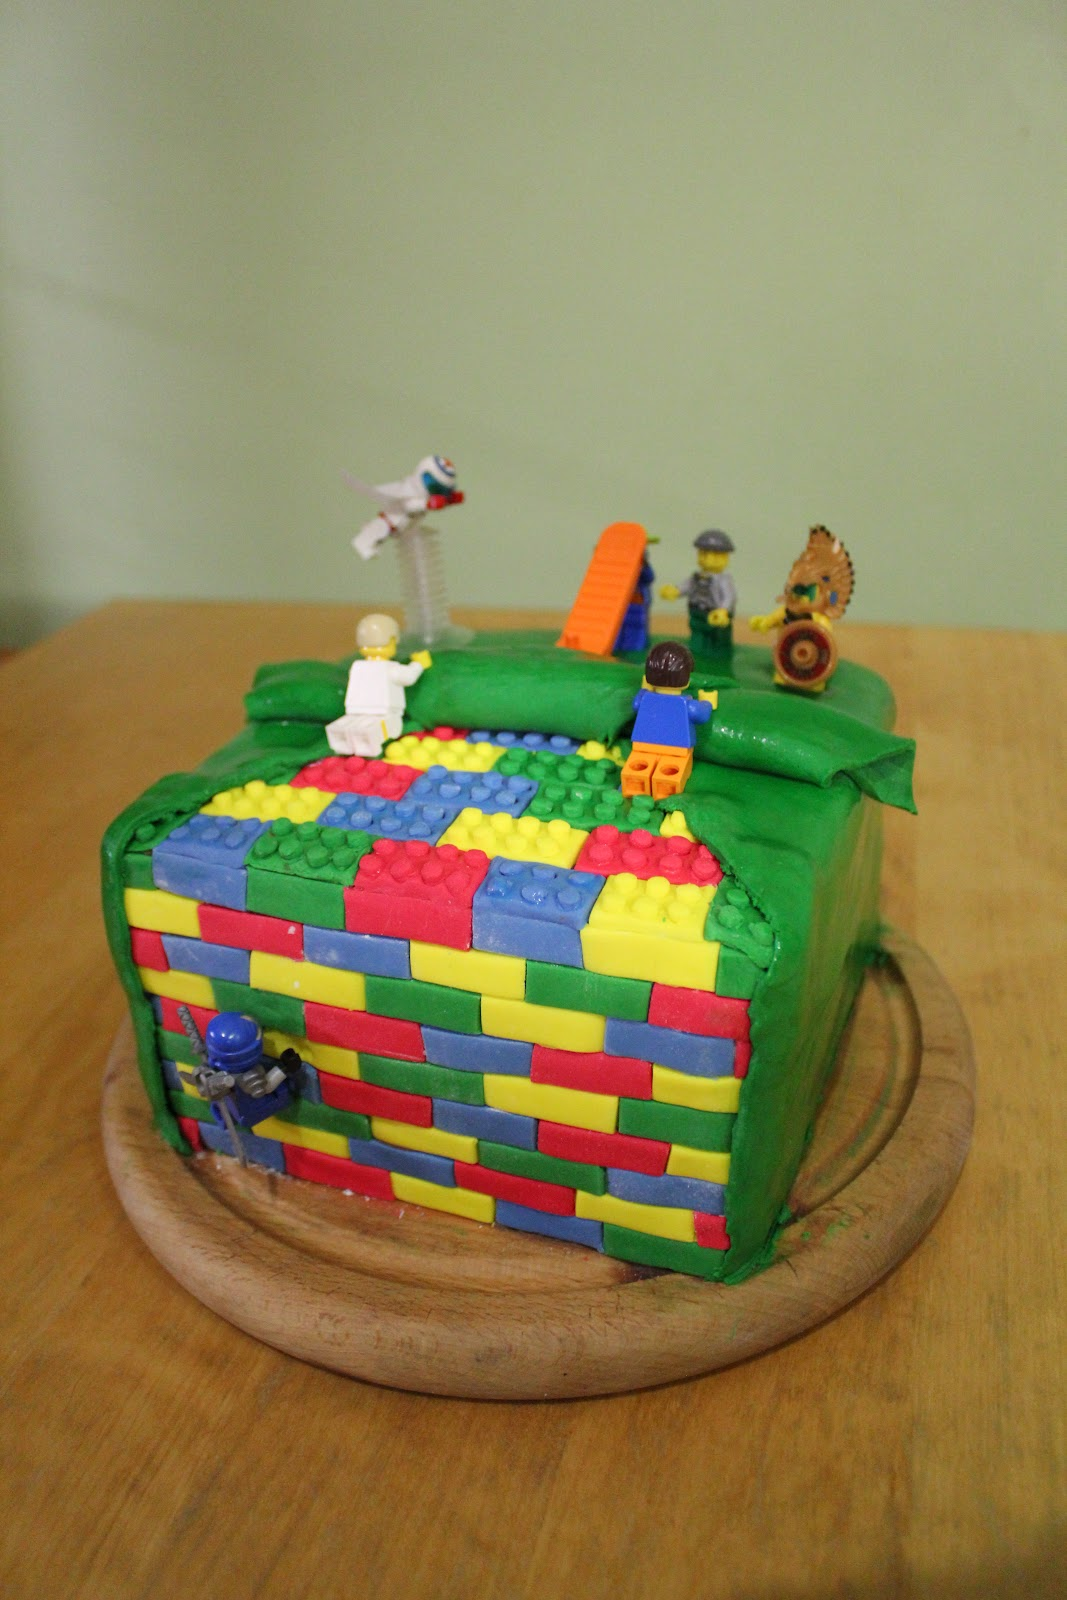 Chaos Kids Crochet And Cake 10th Birthday Cake Lego